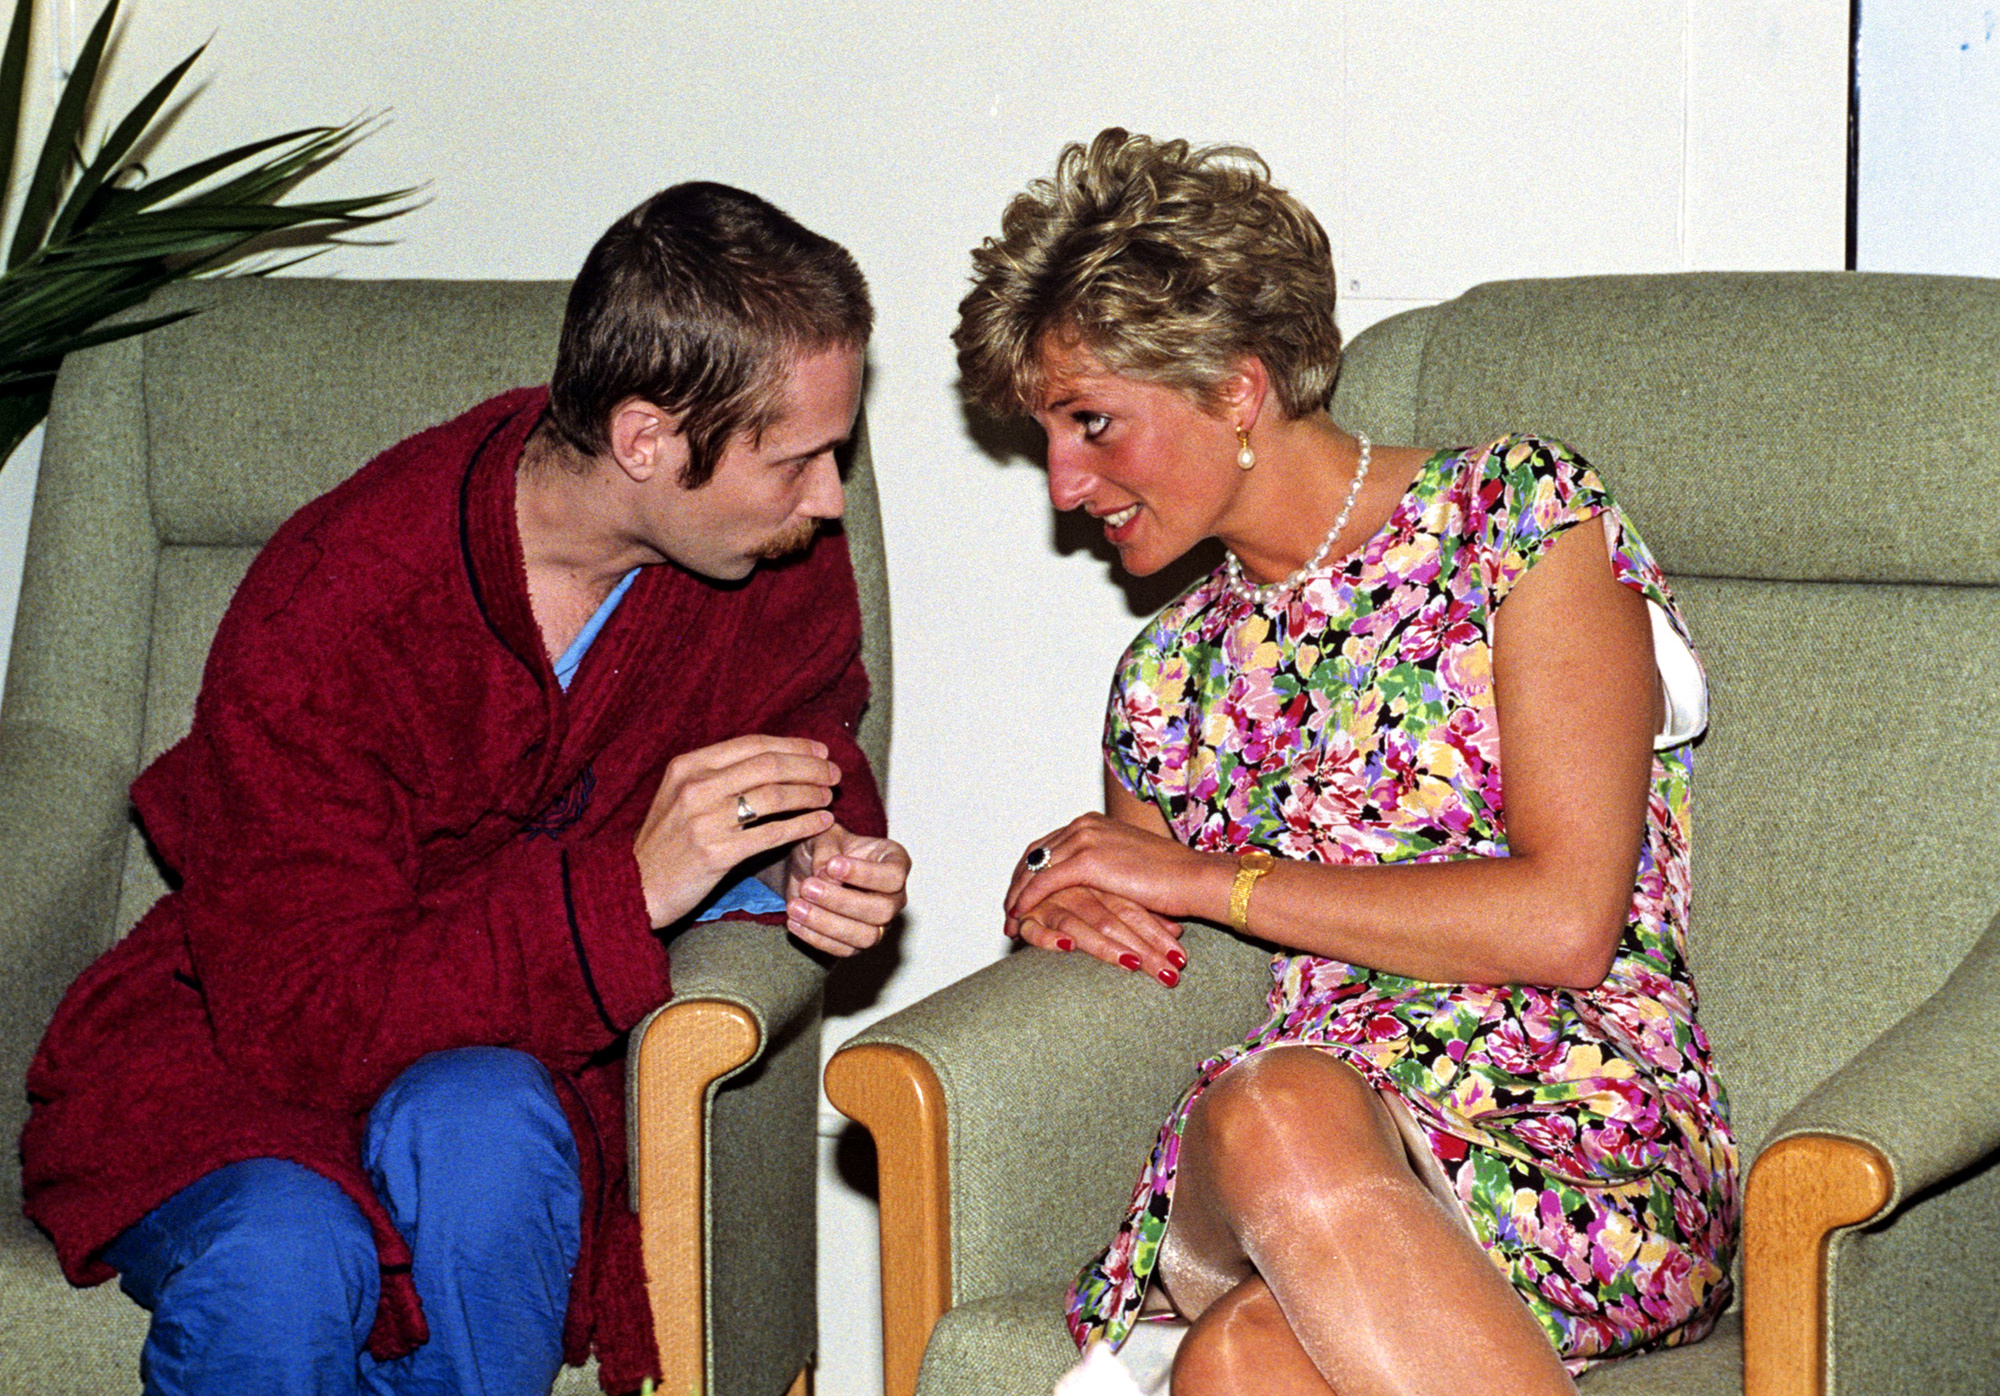 Mandatory Credit: Photo by News Group/REX/Shutterstock (187592c) Princess Diana Talking to AIDS patient Princess Diana visiting the AIDS Unit at the Middlesex Hospital, London, Britain - 1991 Princess Diana visiting the AIDS Unit at the Middlesex Hospital, London, Britain - 1991 Copyright (c) 1991 Rex Features. No use without permission.    187592c 187592c Rex Features